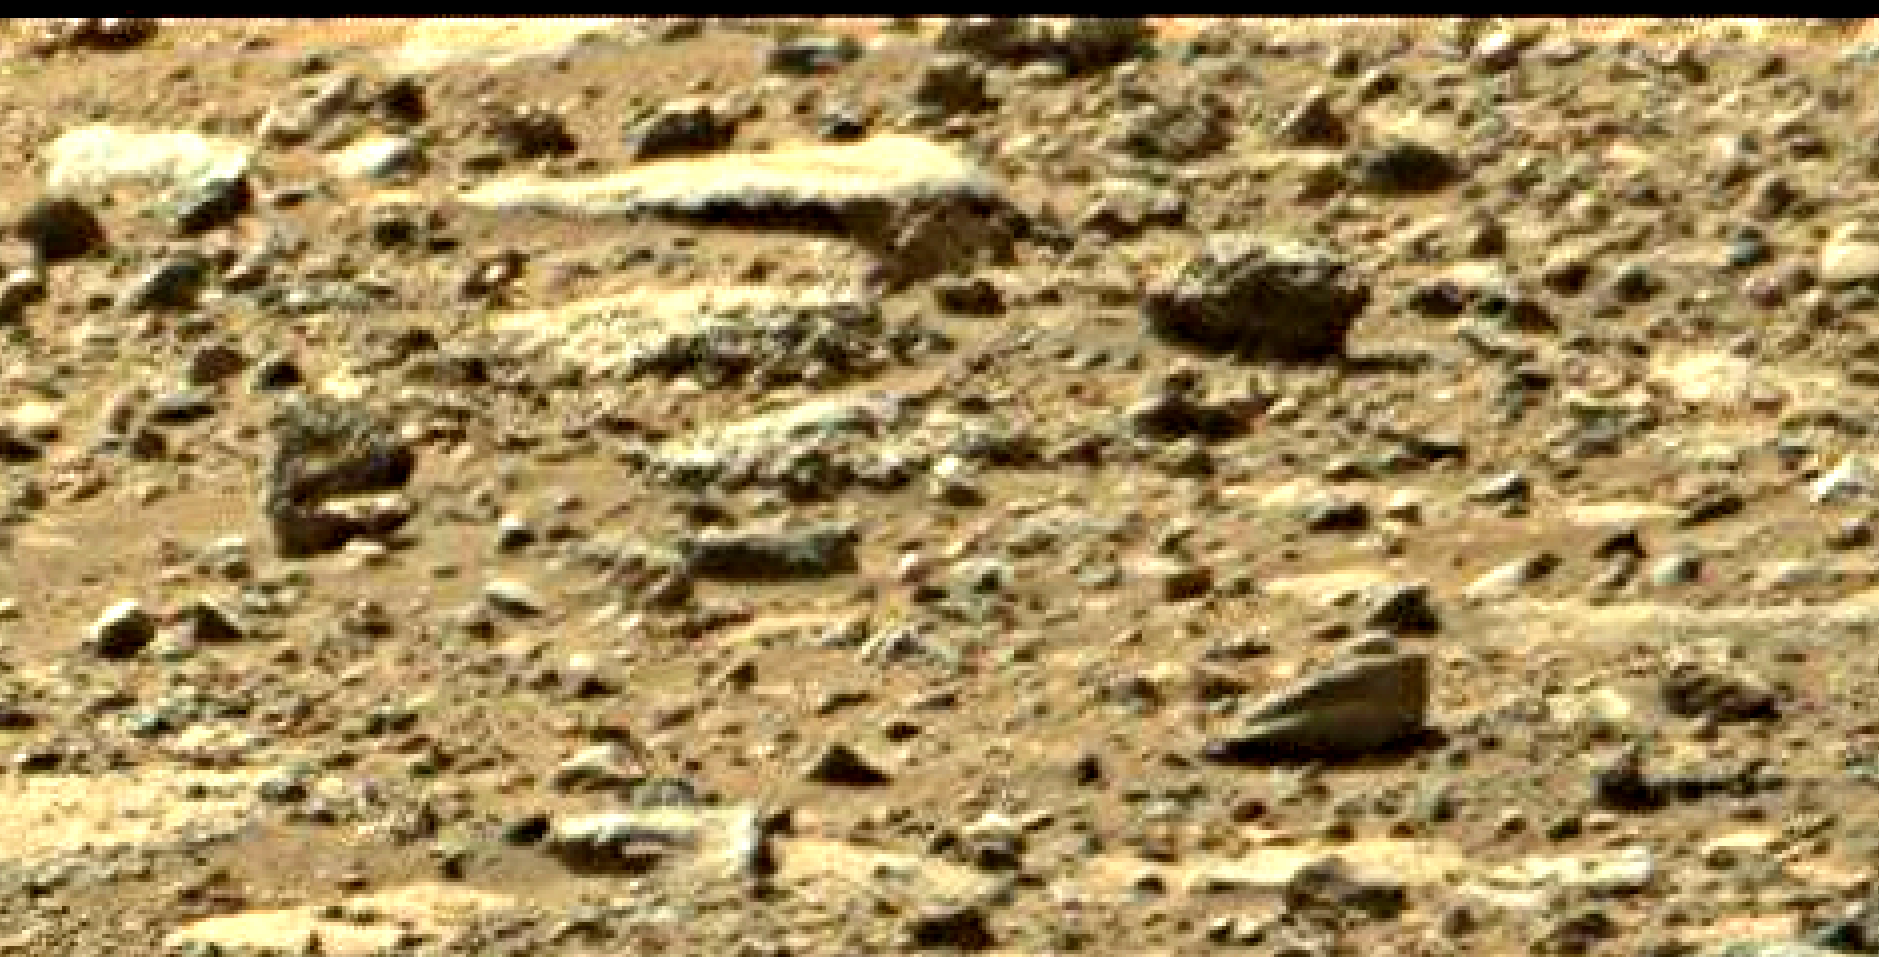 mars sol 1405 anomaly artifacts 3 was life on mars